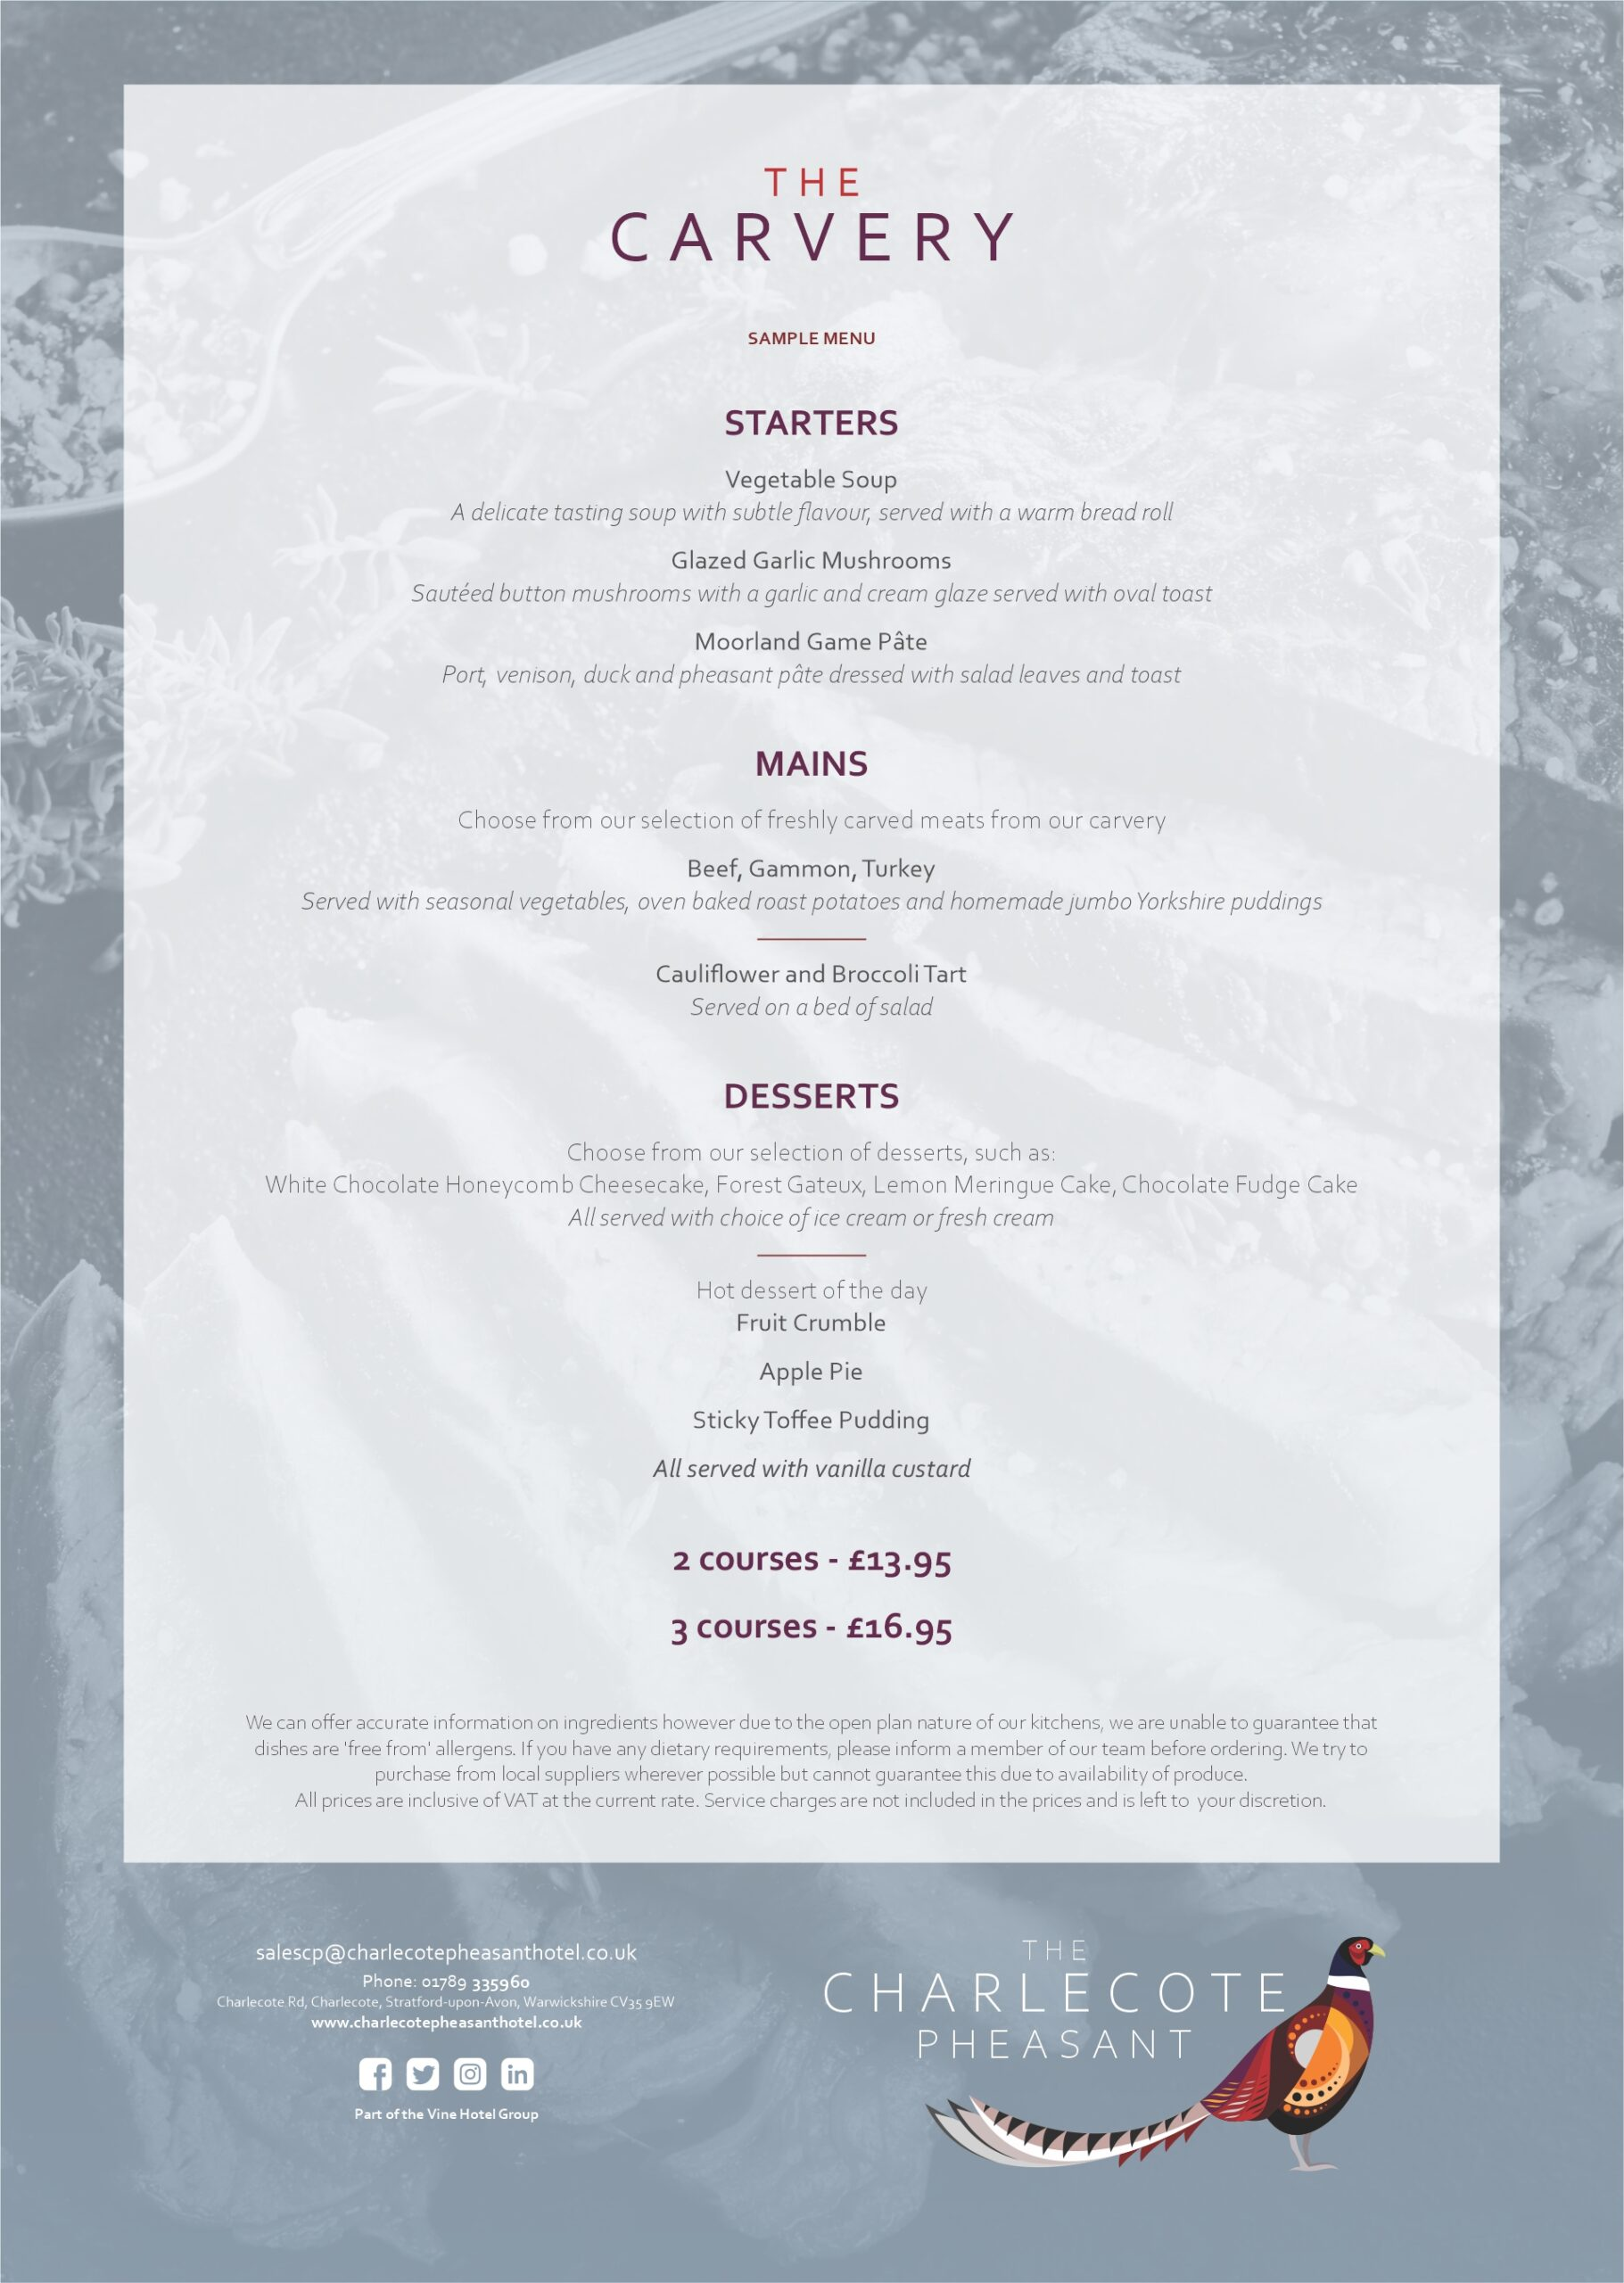 The Charlecote Pheasant Hotel Weekend Carvery Menu